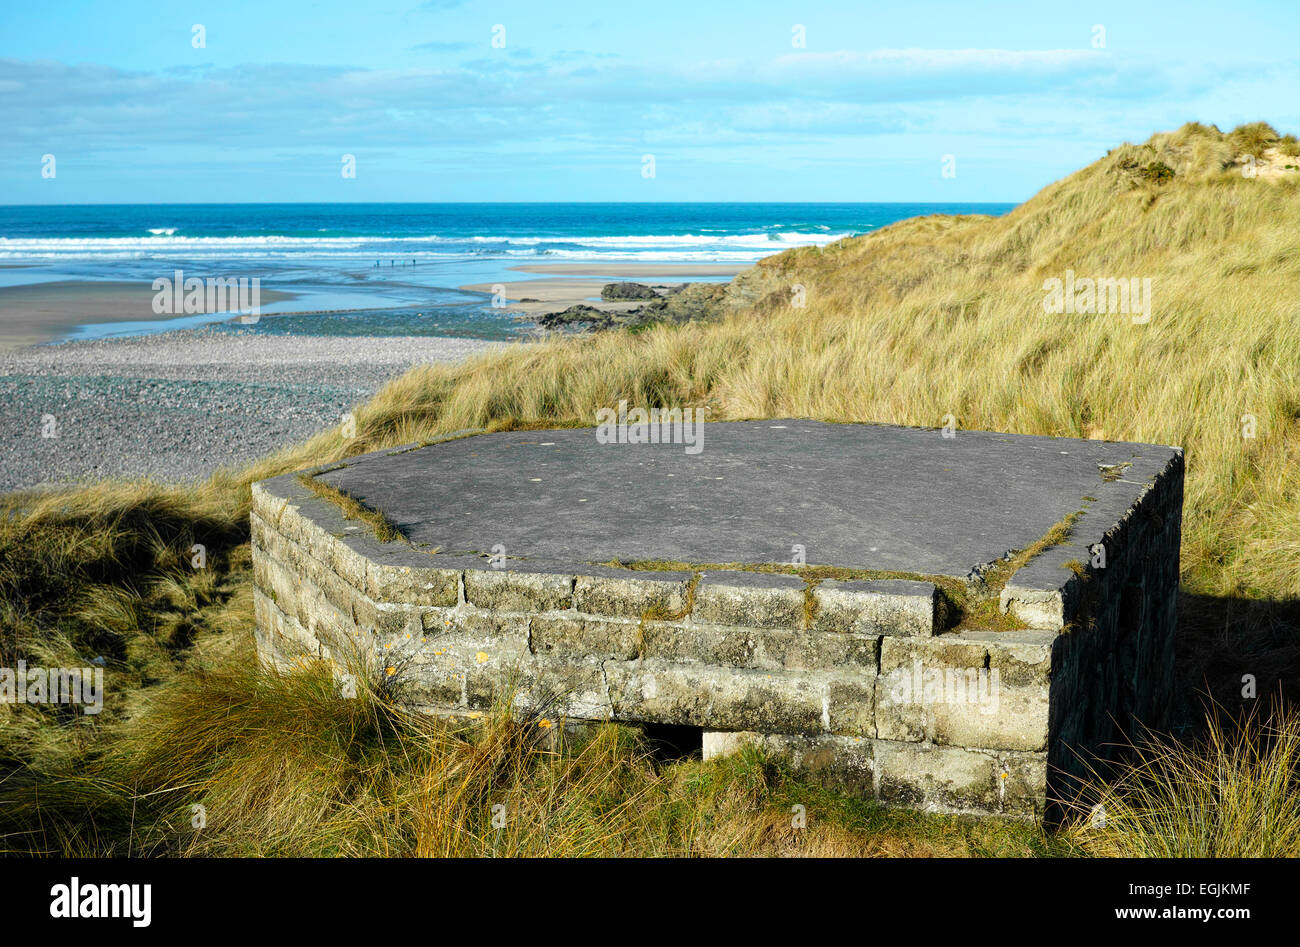 a second world war pill box in the sand dunes at gwithian in cornwall, uk - Stock Image